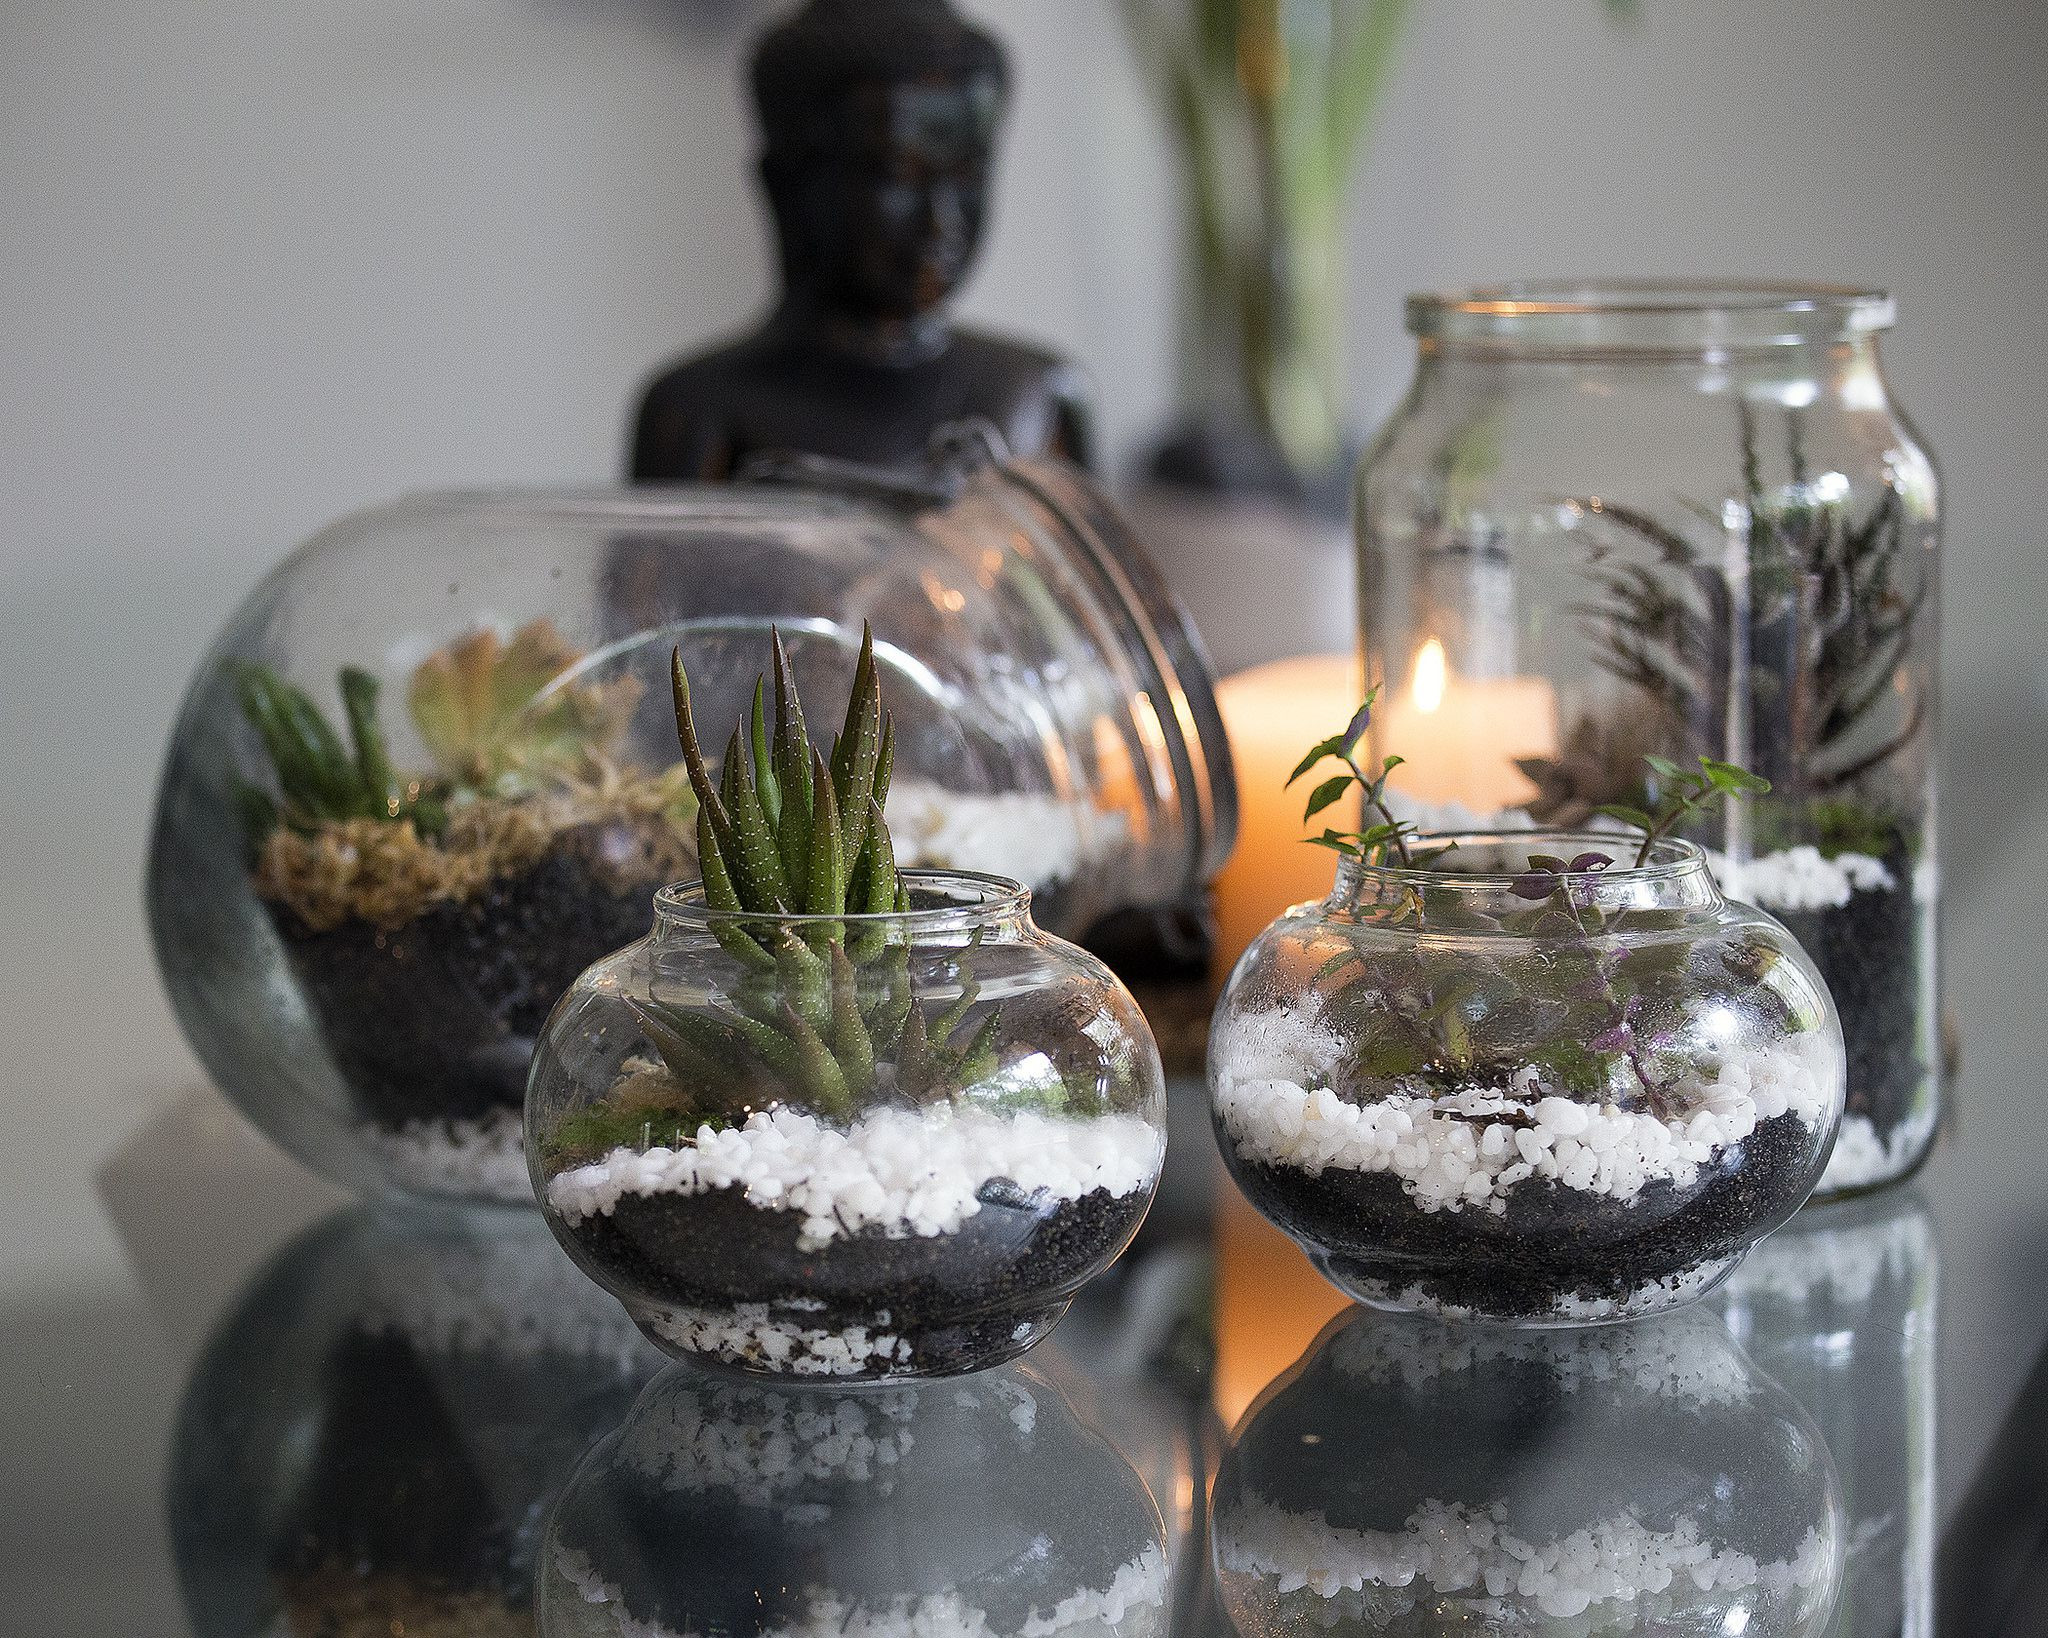 lucky bamboo plant with glass vase of common terrarium mistakes and how to avoid them inside terrarium 22867406835 68063d4d0a k 58e699025f9b58ef7ee5c35d